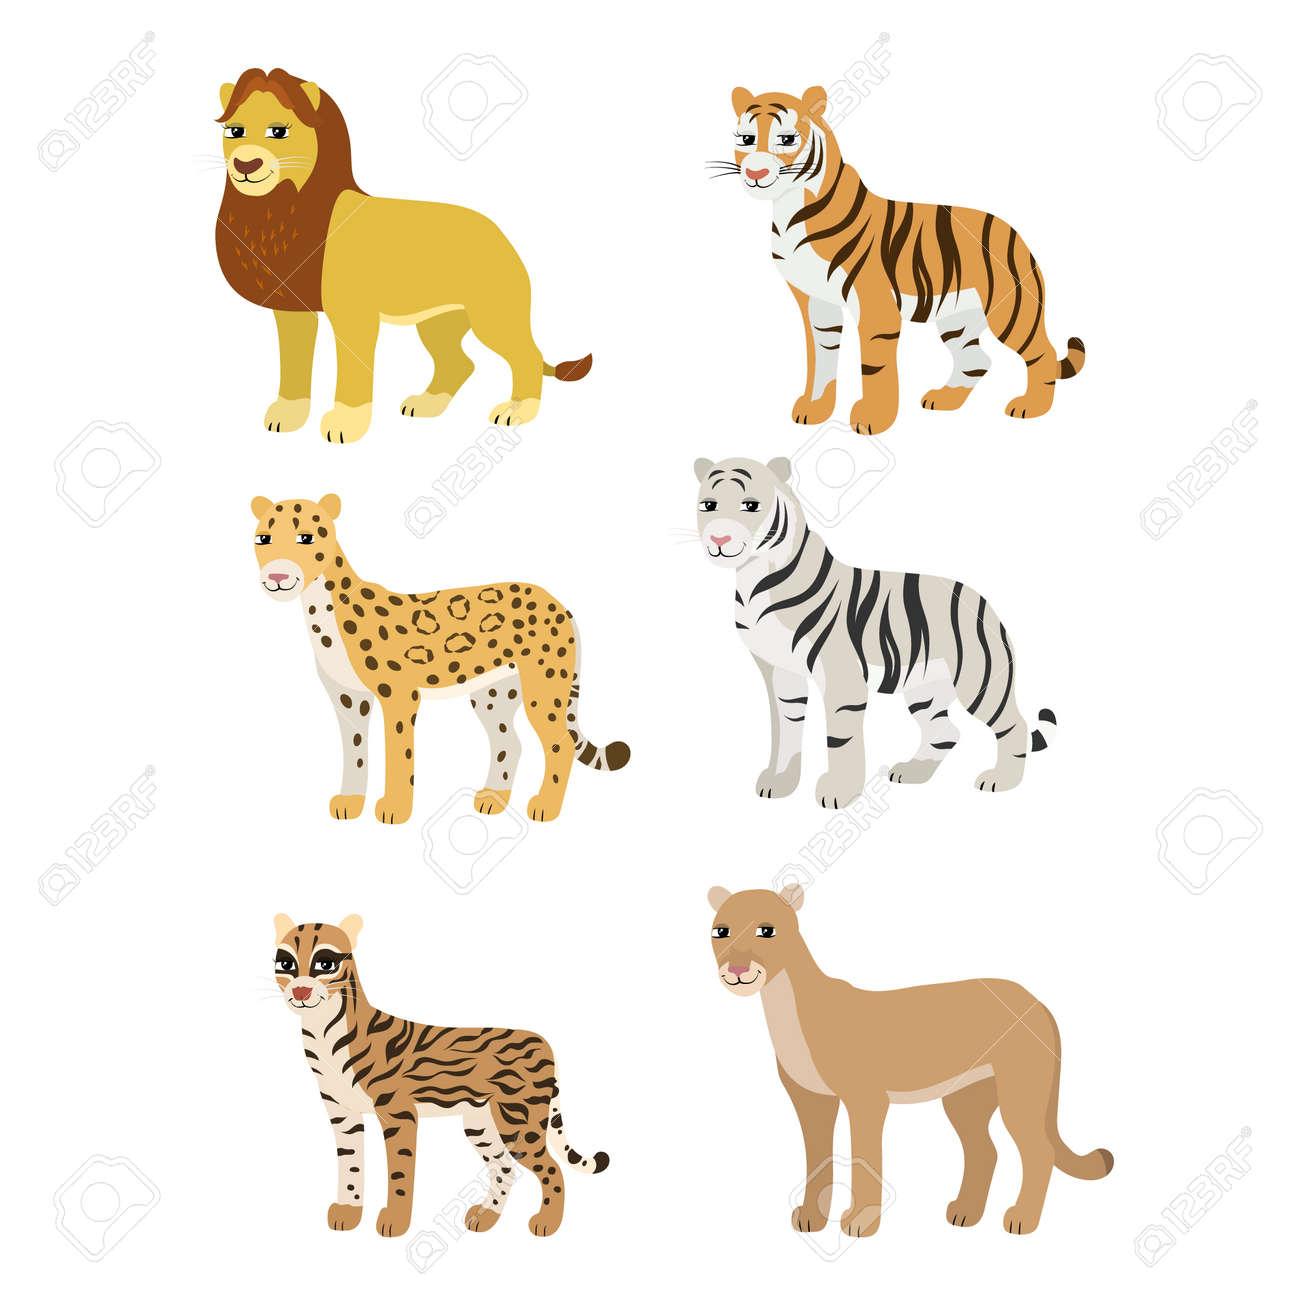 official photos e424d 0b941 Vector - Vector cartoon animals  lion tiger leopard white tiger puma  ocelot. The drawn set of wild cats. Collection of stylized predators in a  flat style.